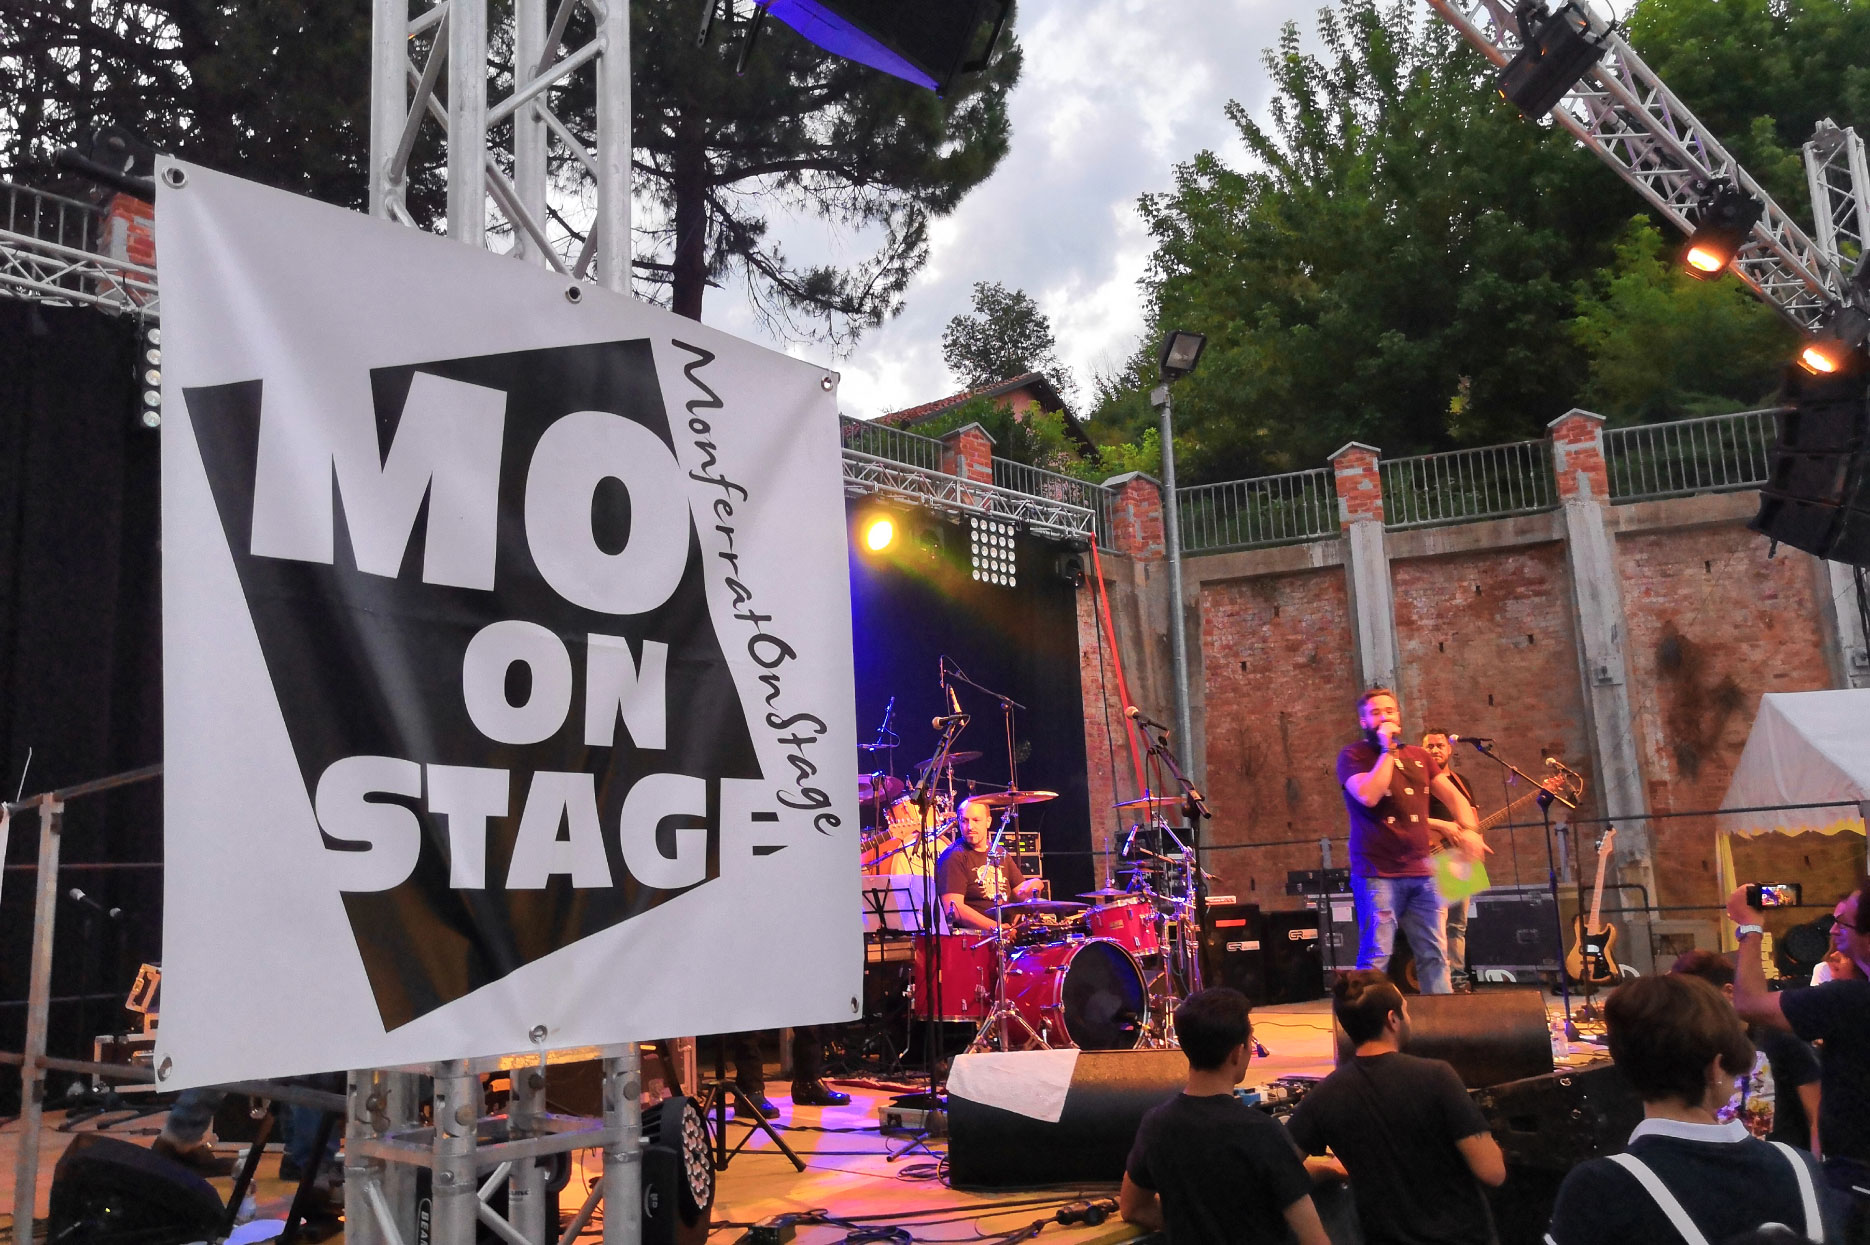 monferrato on stage (2)